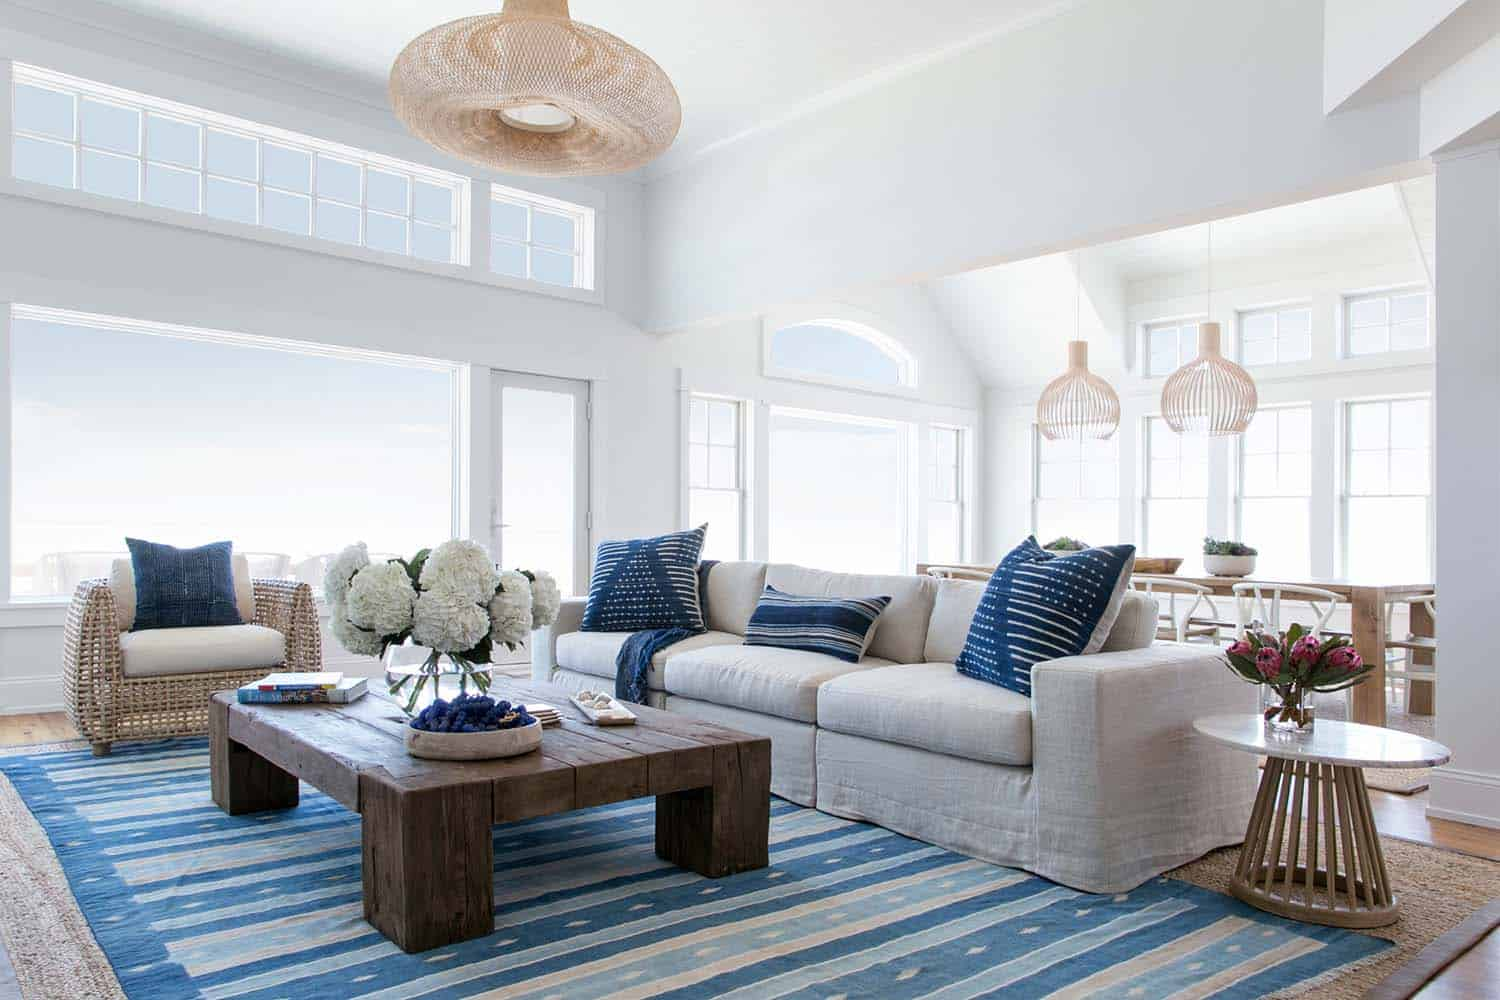 Coastal-Chic Beach Home-Chango Co-03-1 Kindesign